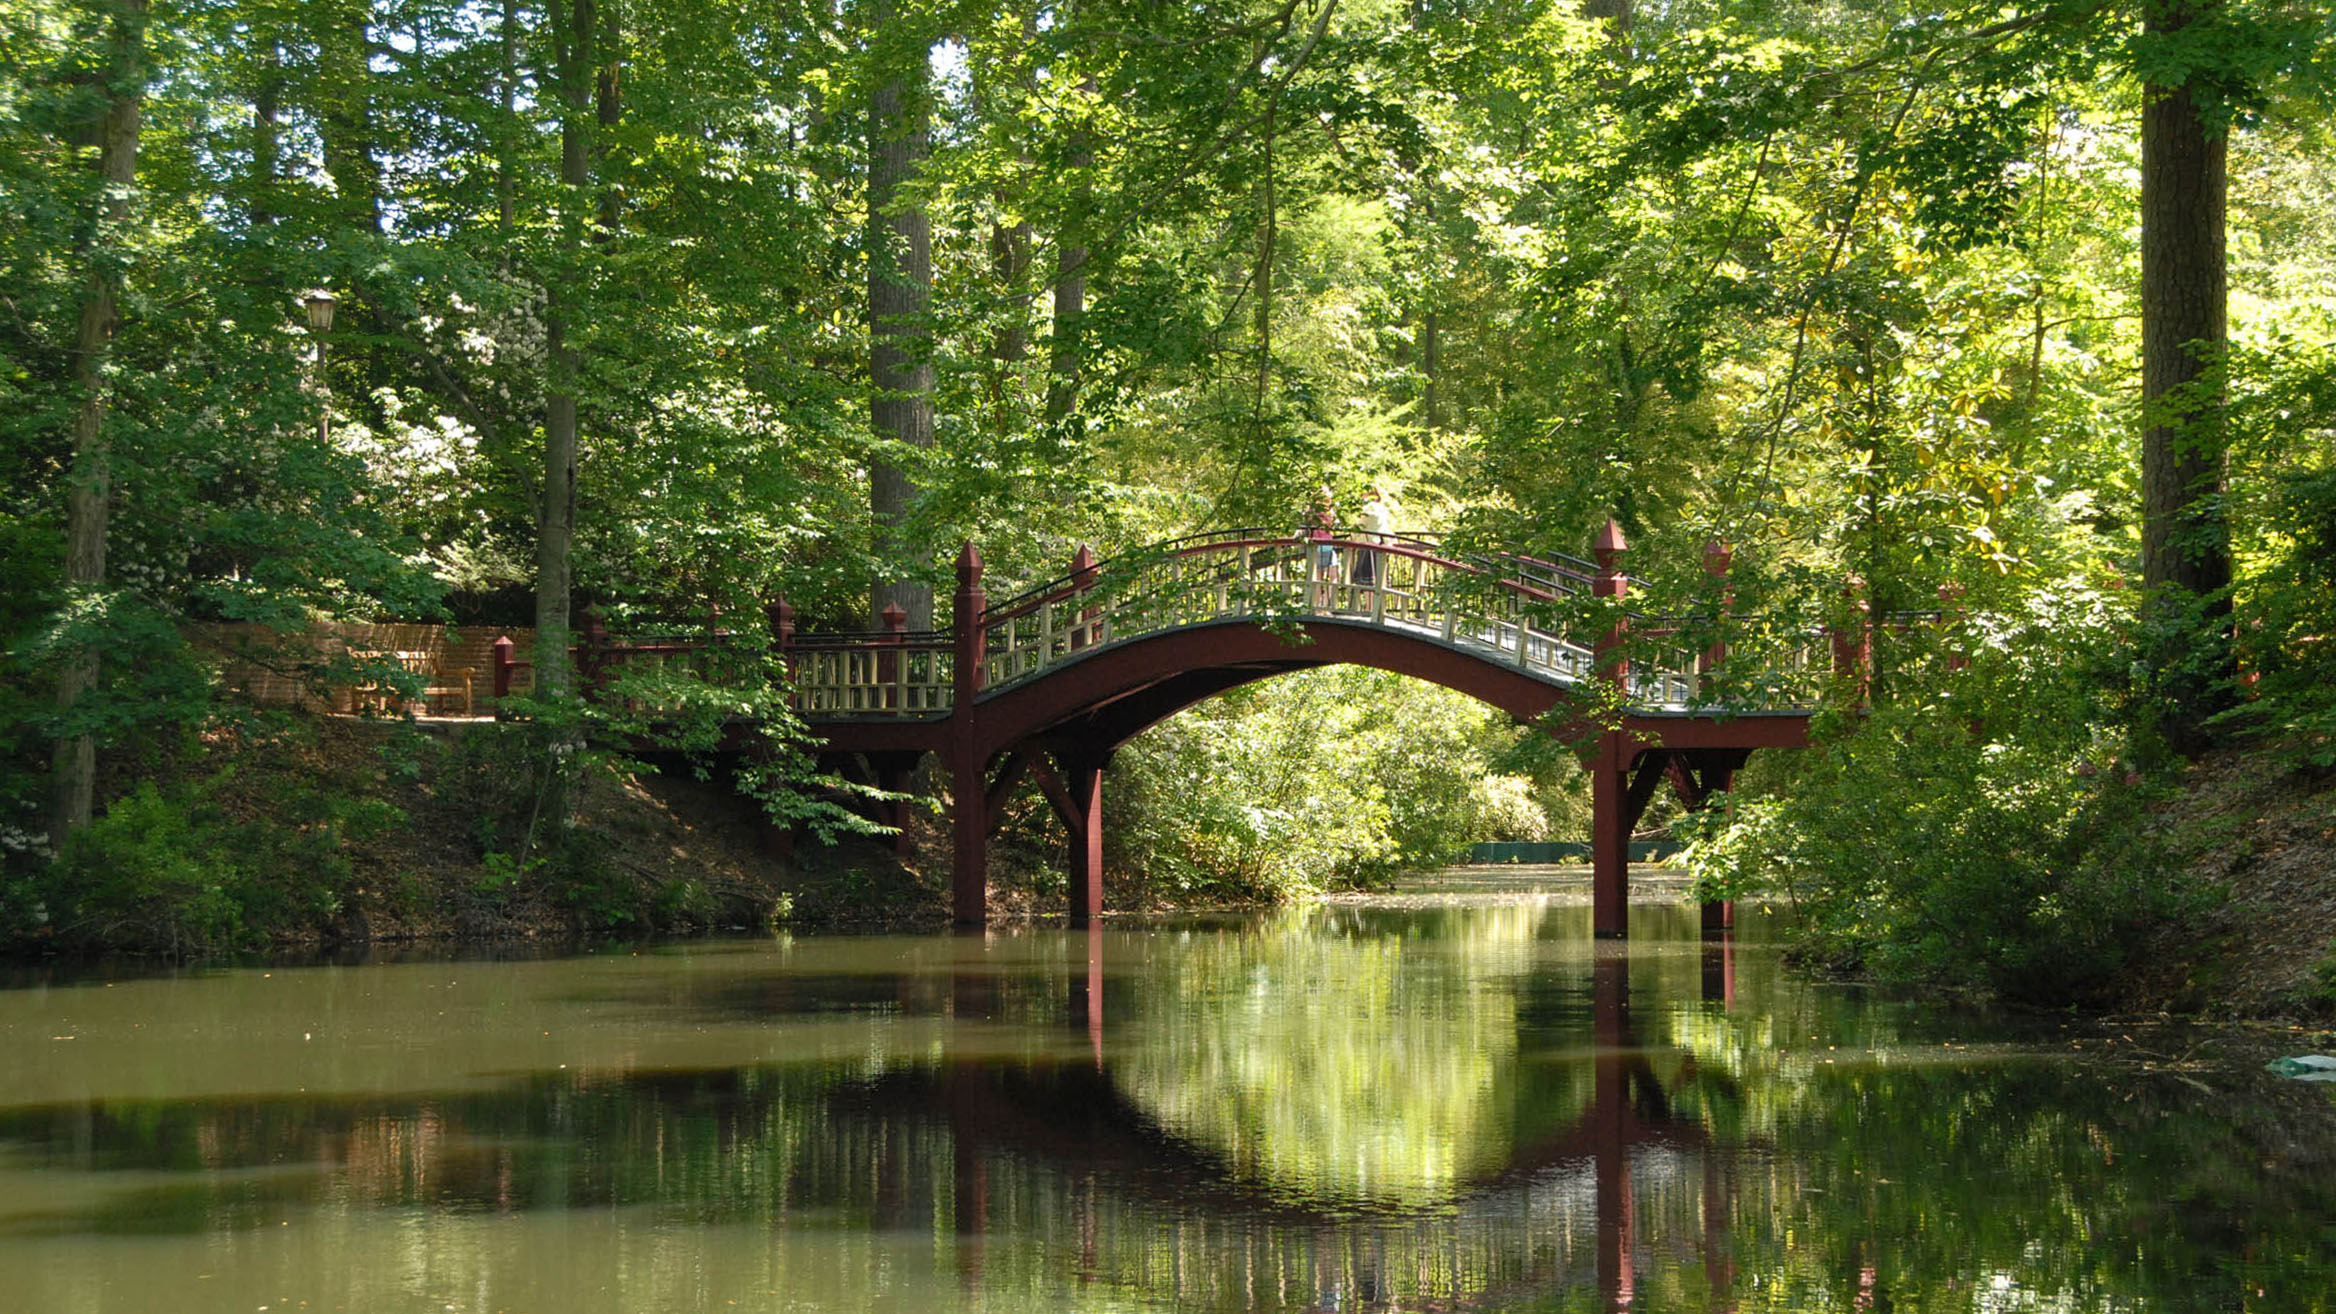 Located in the heart of William and Mary's scenic campus, Crim Dell Bridge is a popular site for students and visitors alike. Lore has it if students kiss on the bridge they will marry each other. Photo courtesy of the College of William and Mary/Scott Elmquist.